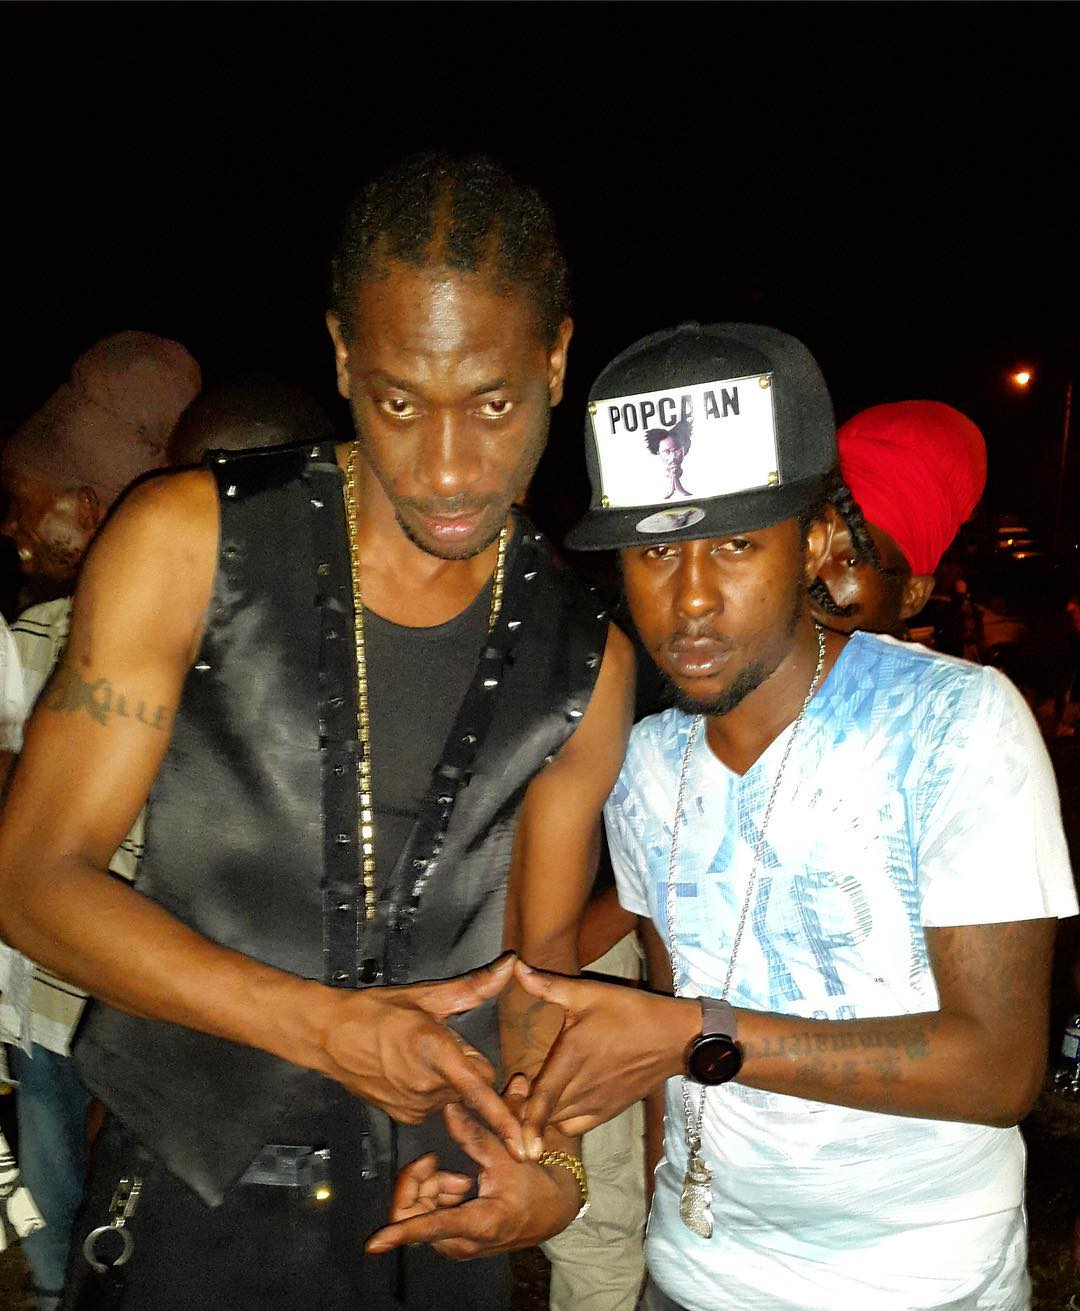 Popcaan Joins Bounty Killer Outcry For Lifting Ban On Profanity In